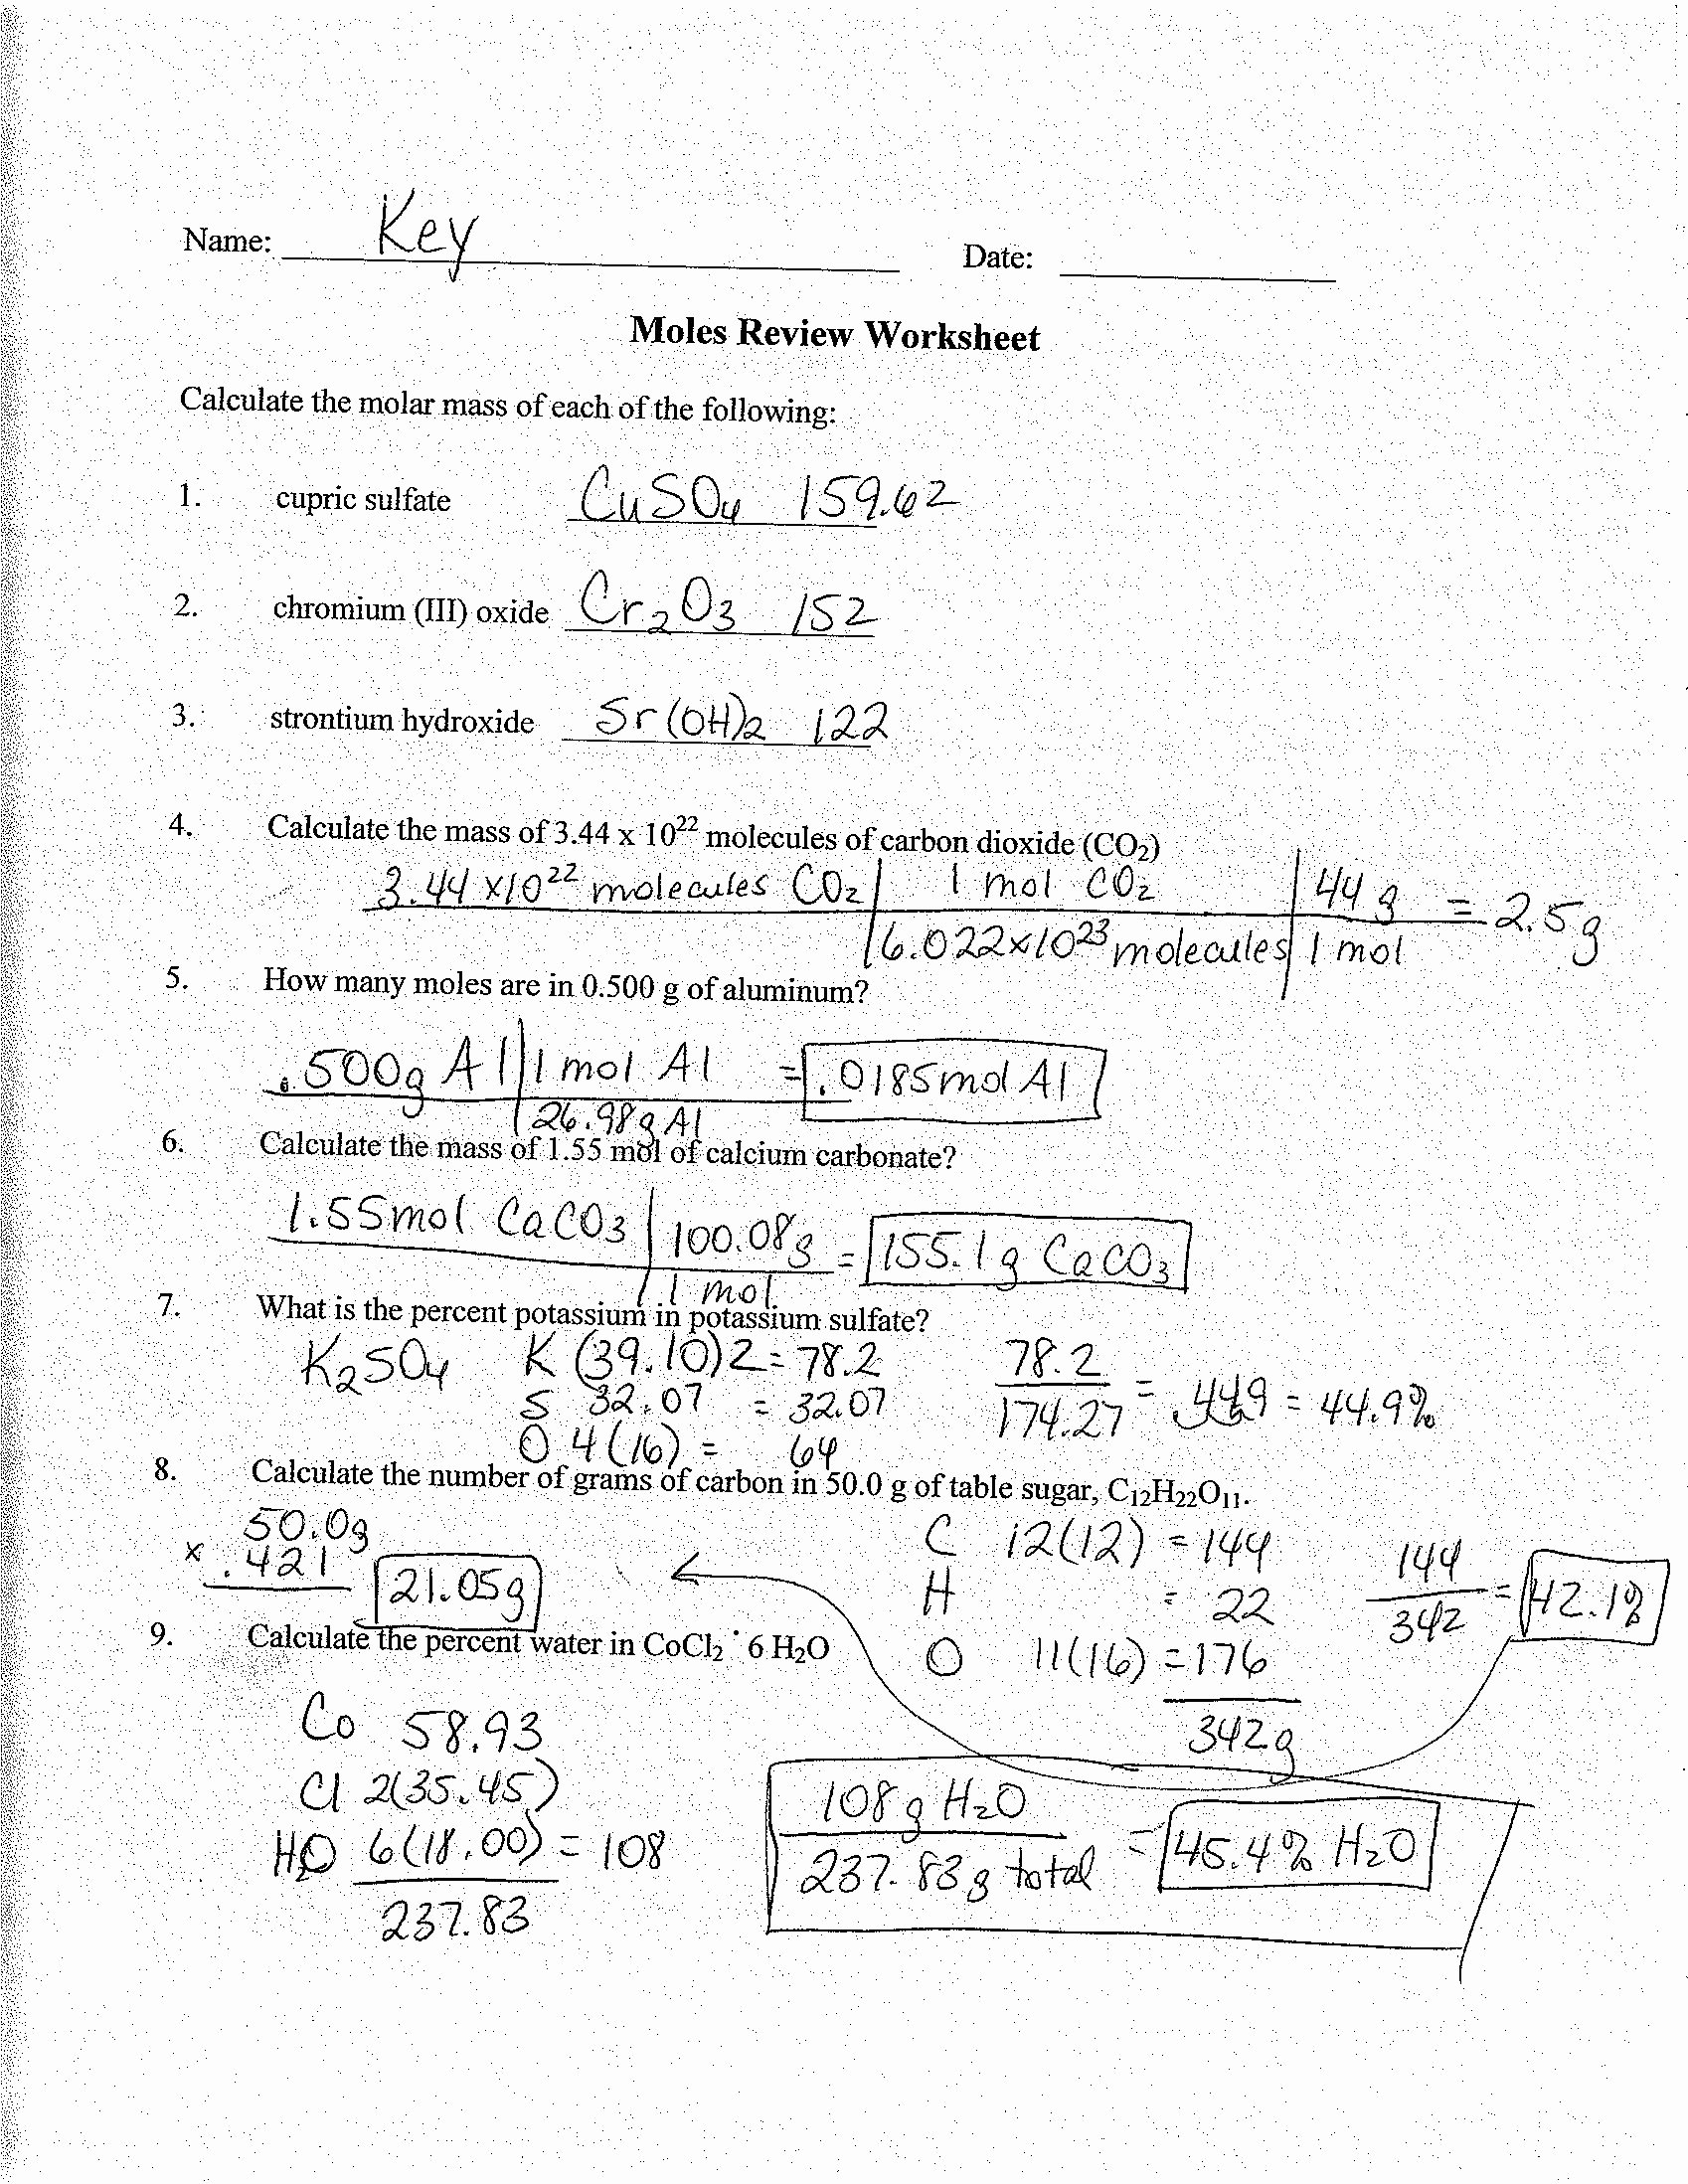 Molar Conversion Worksheet Answers Luxury 84 Mole Conversion Worksheet Answers Mole Ratio Worksheet